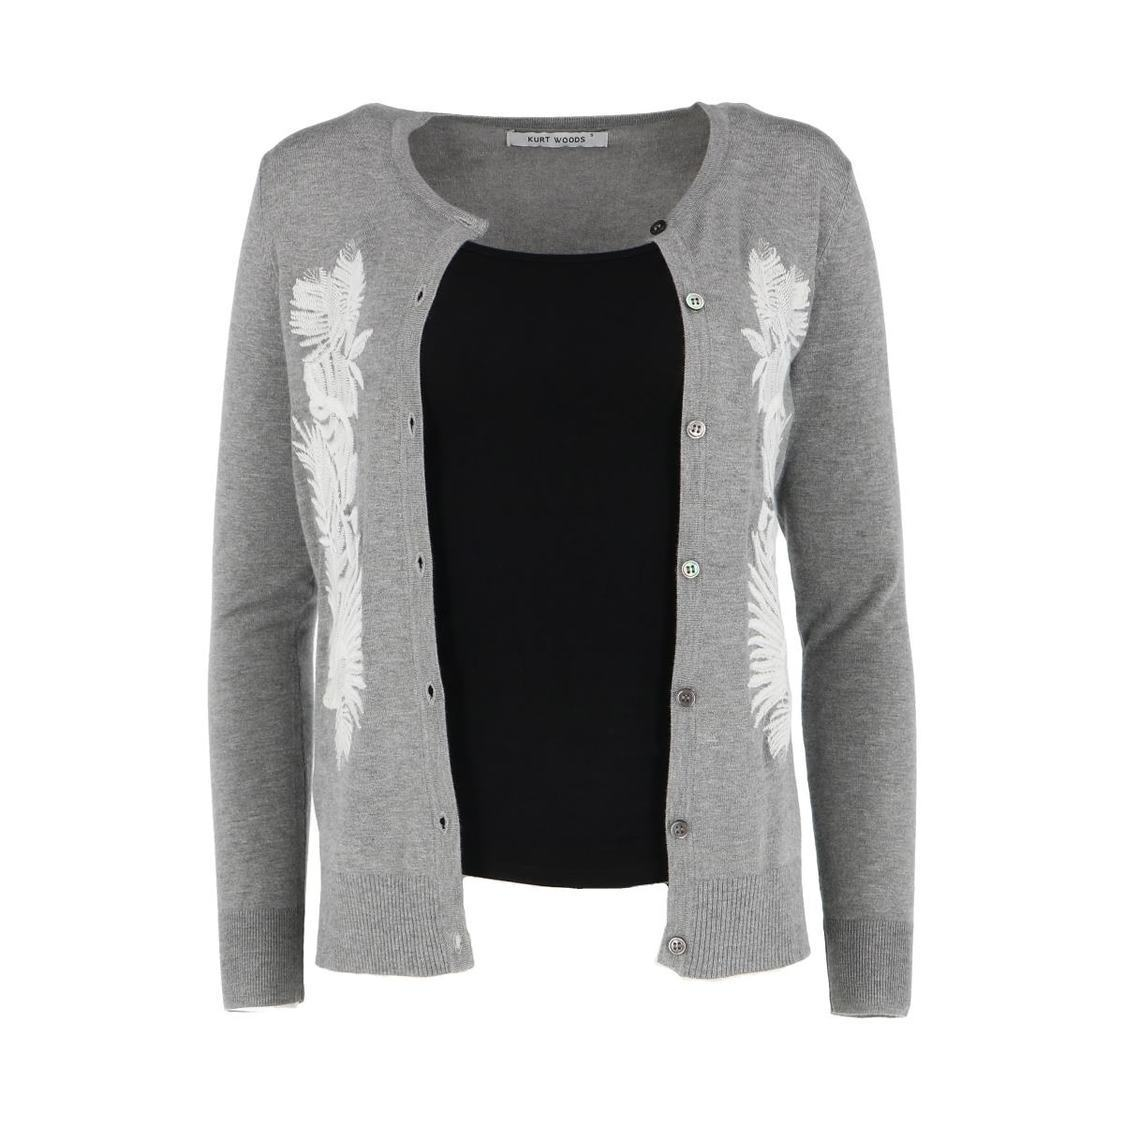 Floral Embroidered Grey Cardigan